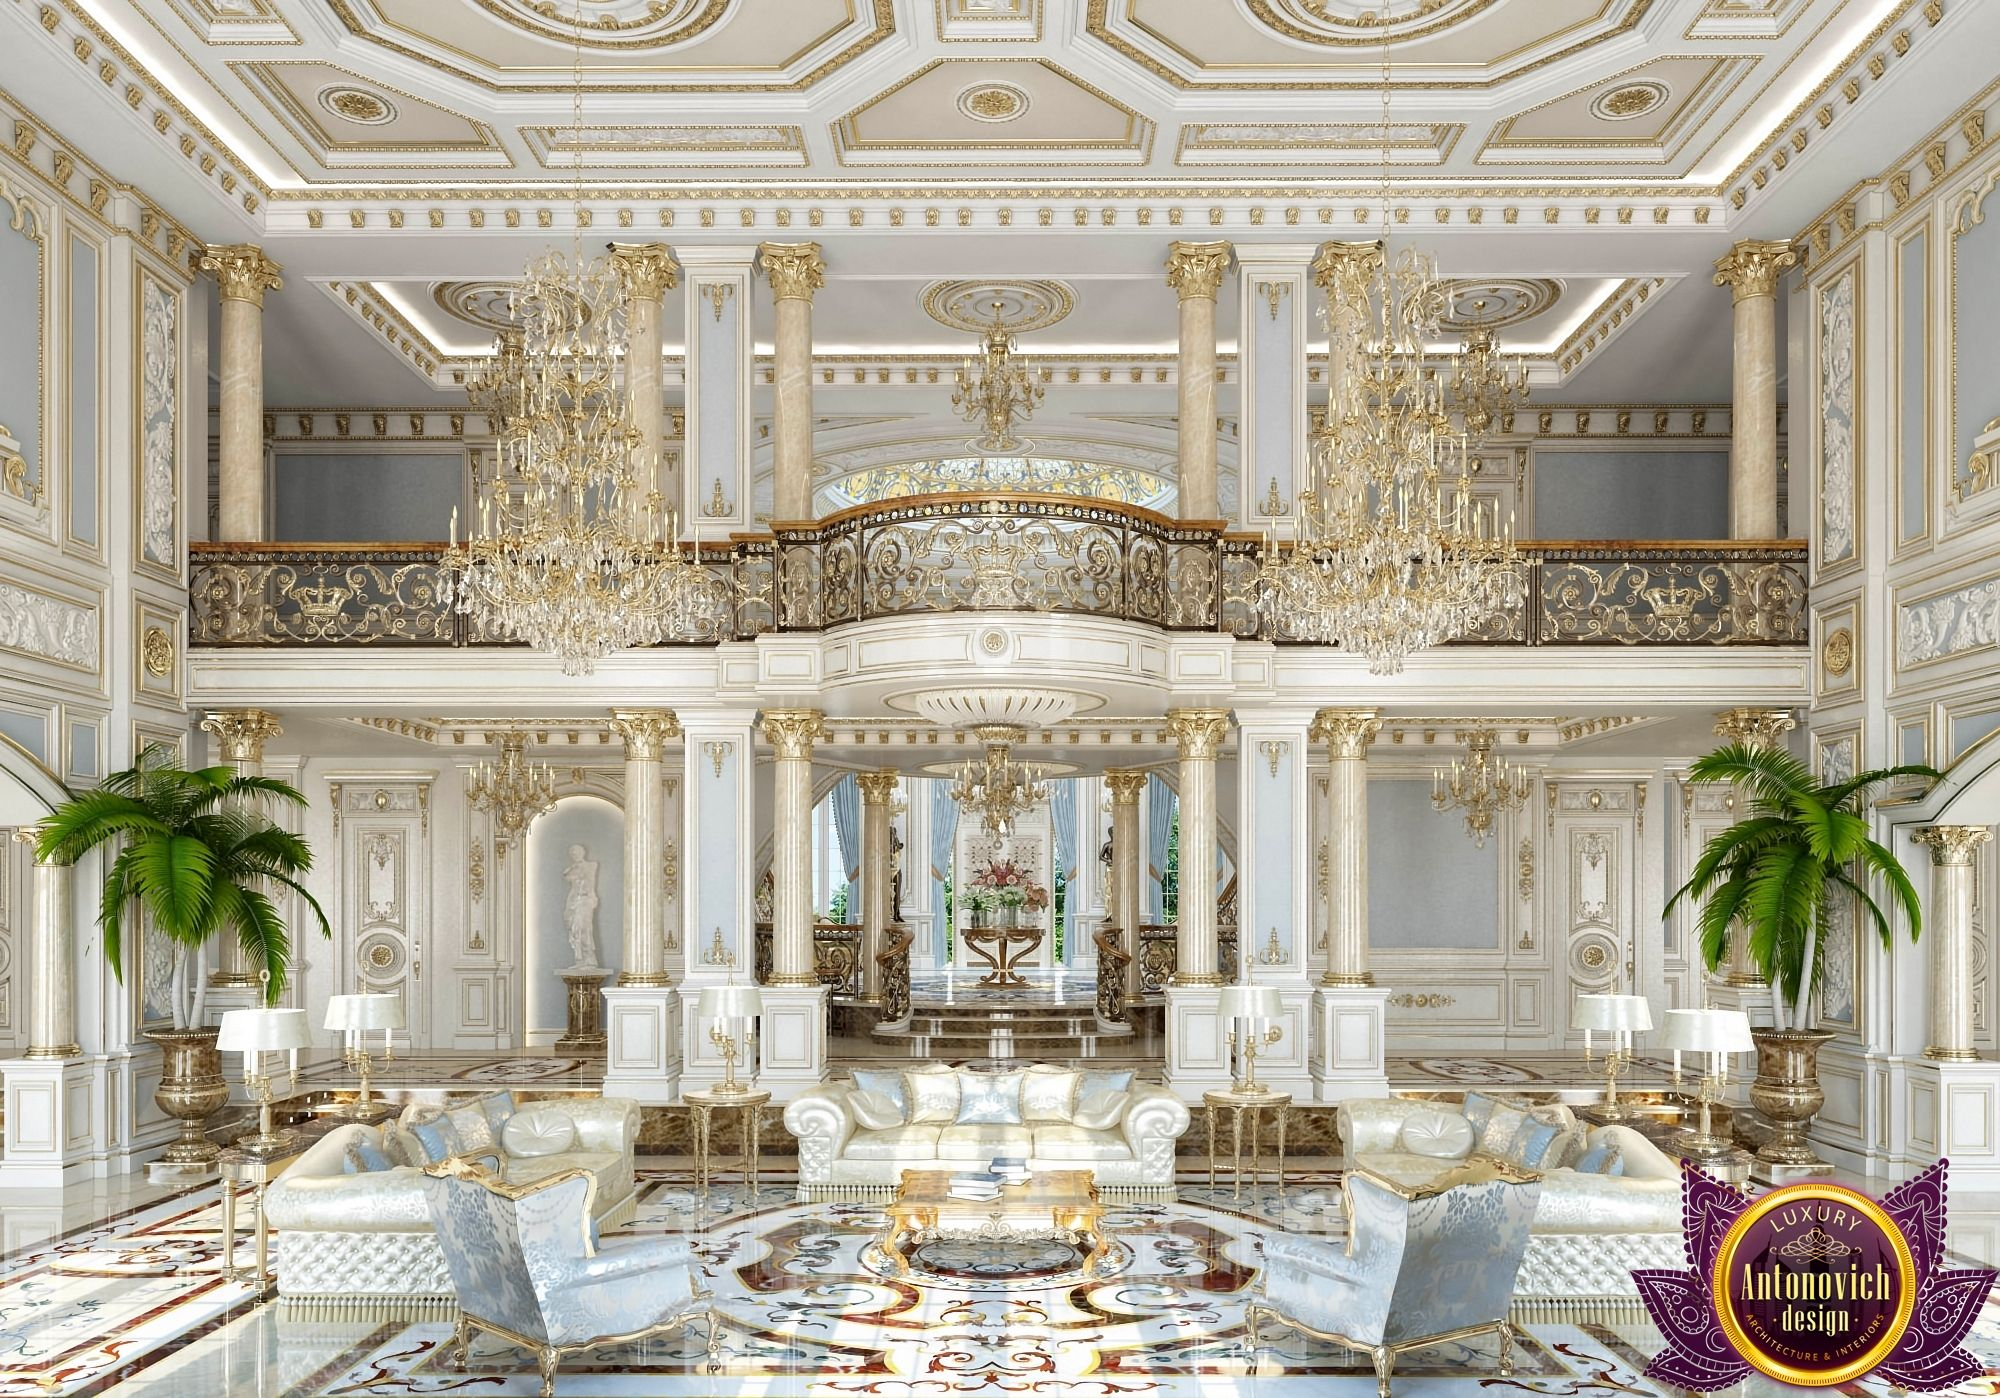 Royal Home Designs: When My Powerball Ticket Pays